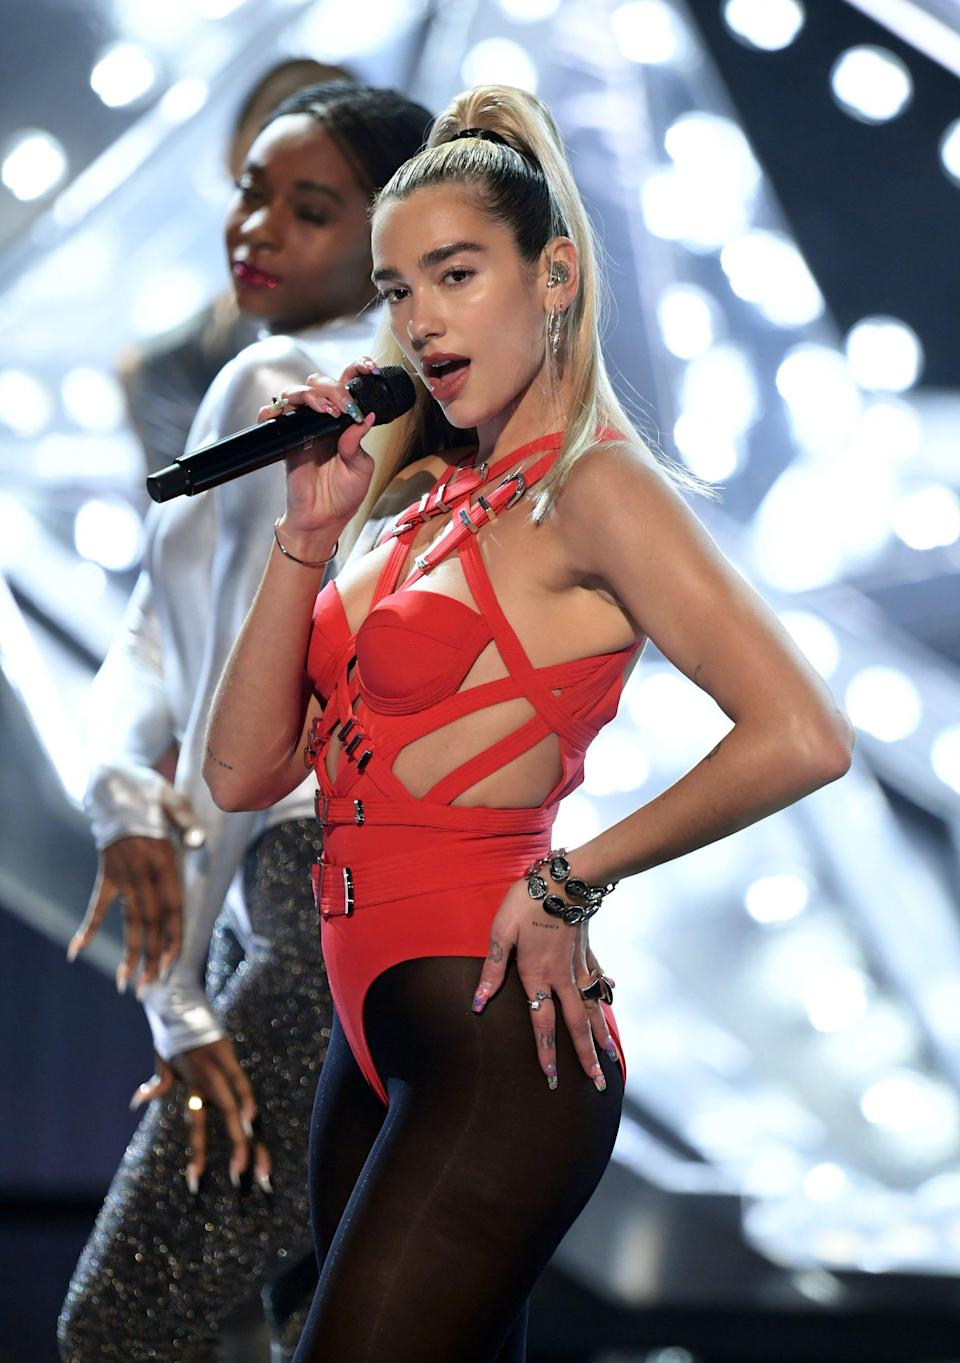 Dua Lipa sings on stage wearing a red leotard with cutouts and black tights.